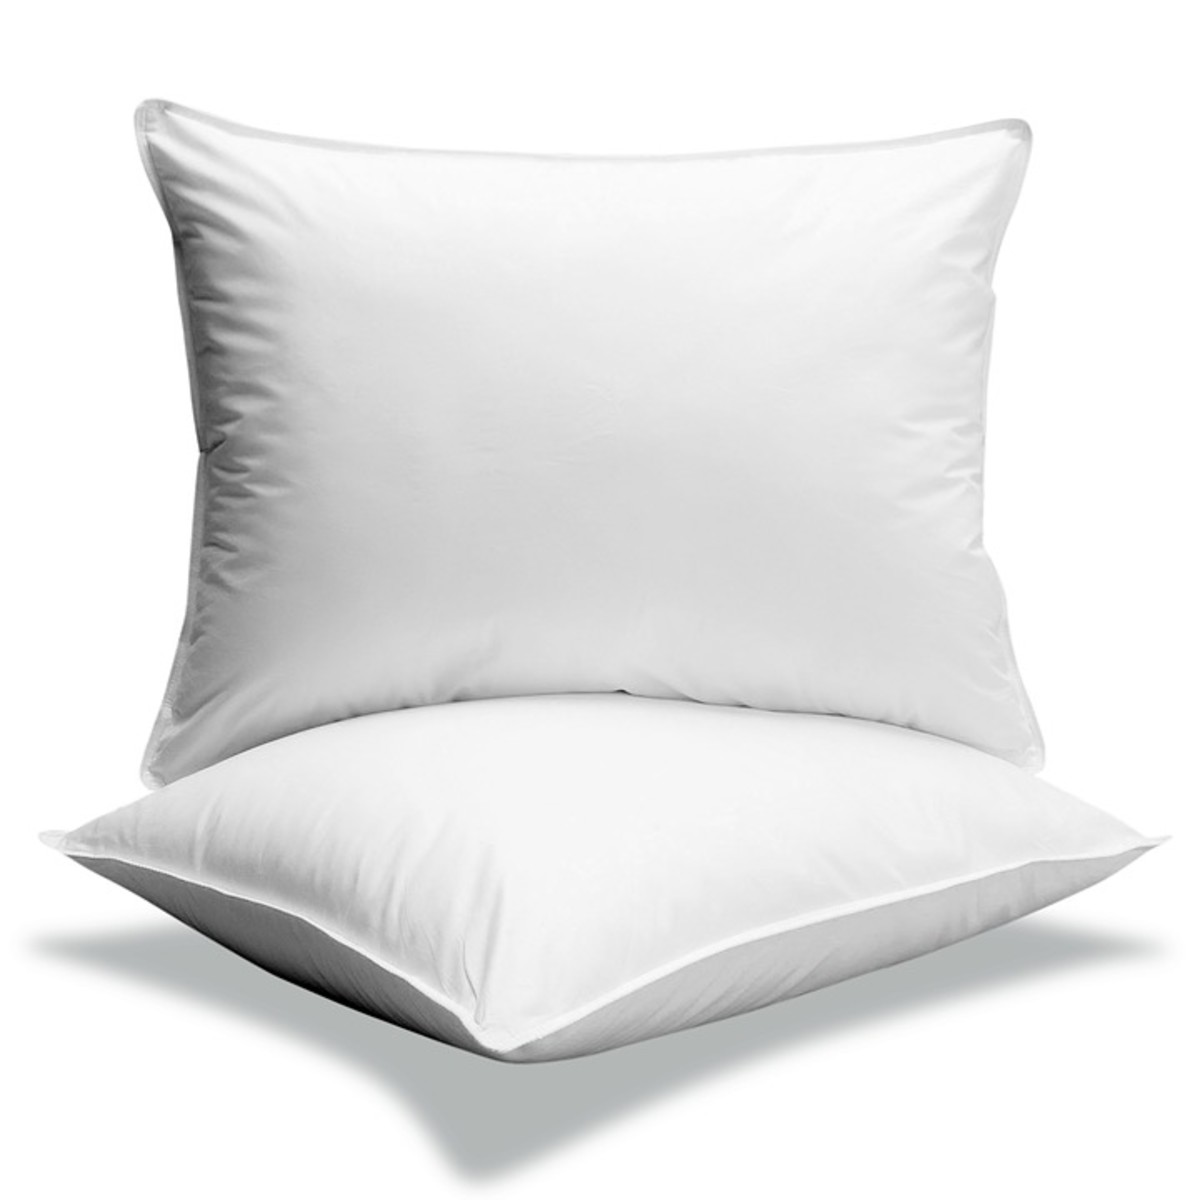 5. Purchase a plain white pillow (or T-shirt) and have the kids sign it with fabric-safe markers